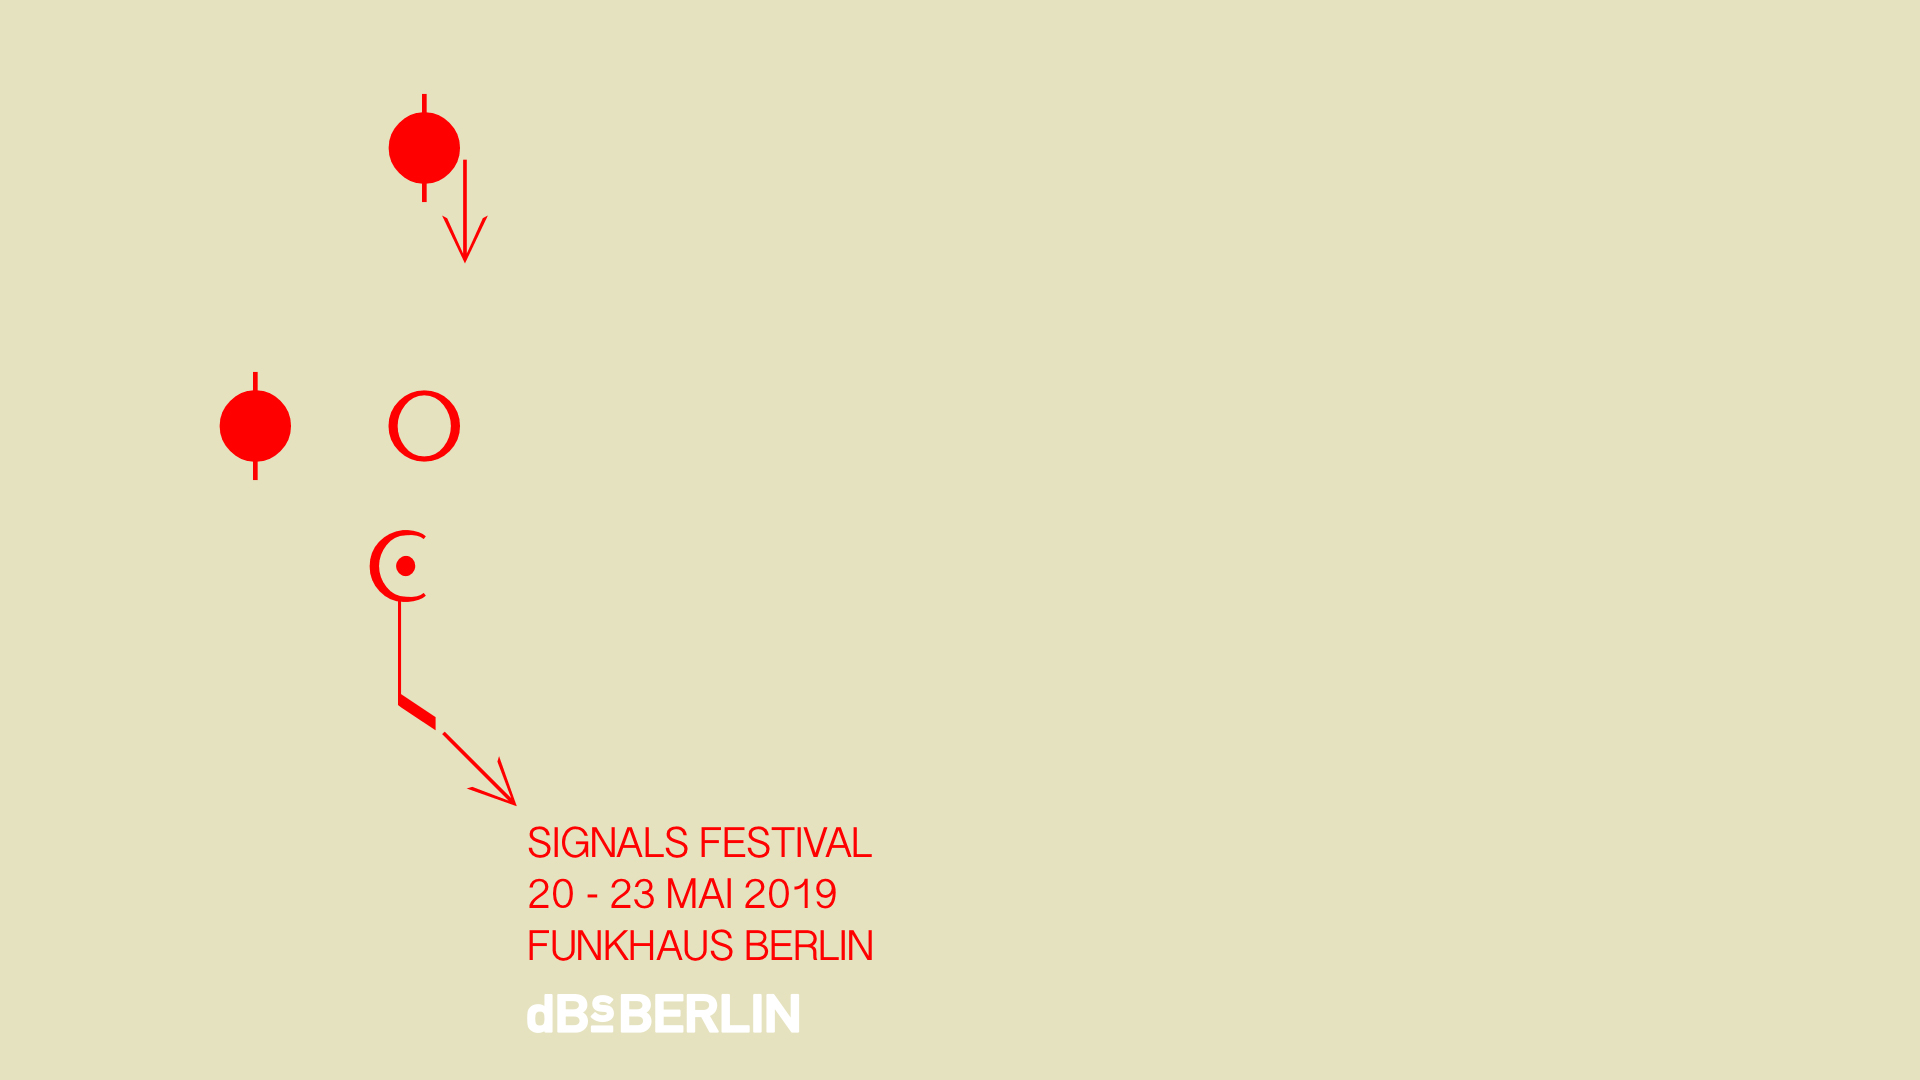 Everything You Need to Know About Signals Festival 2019